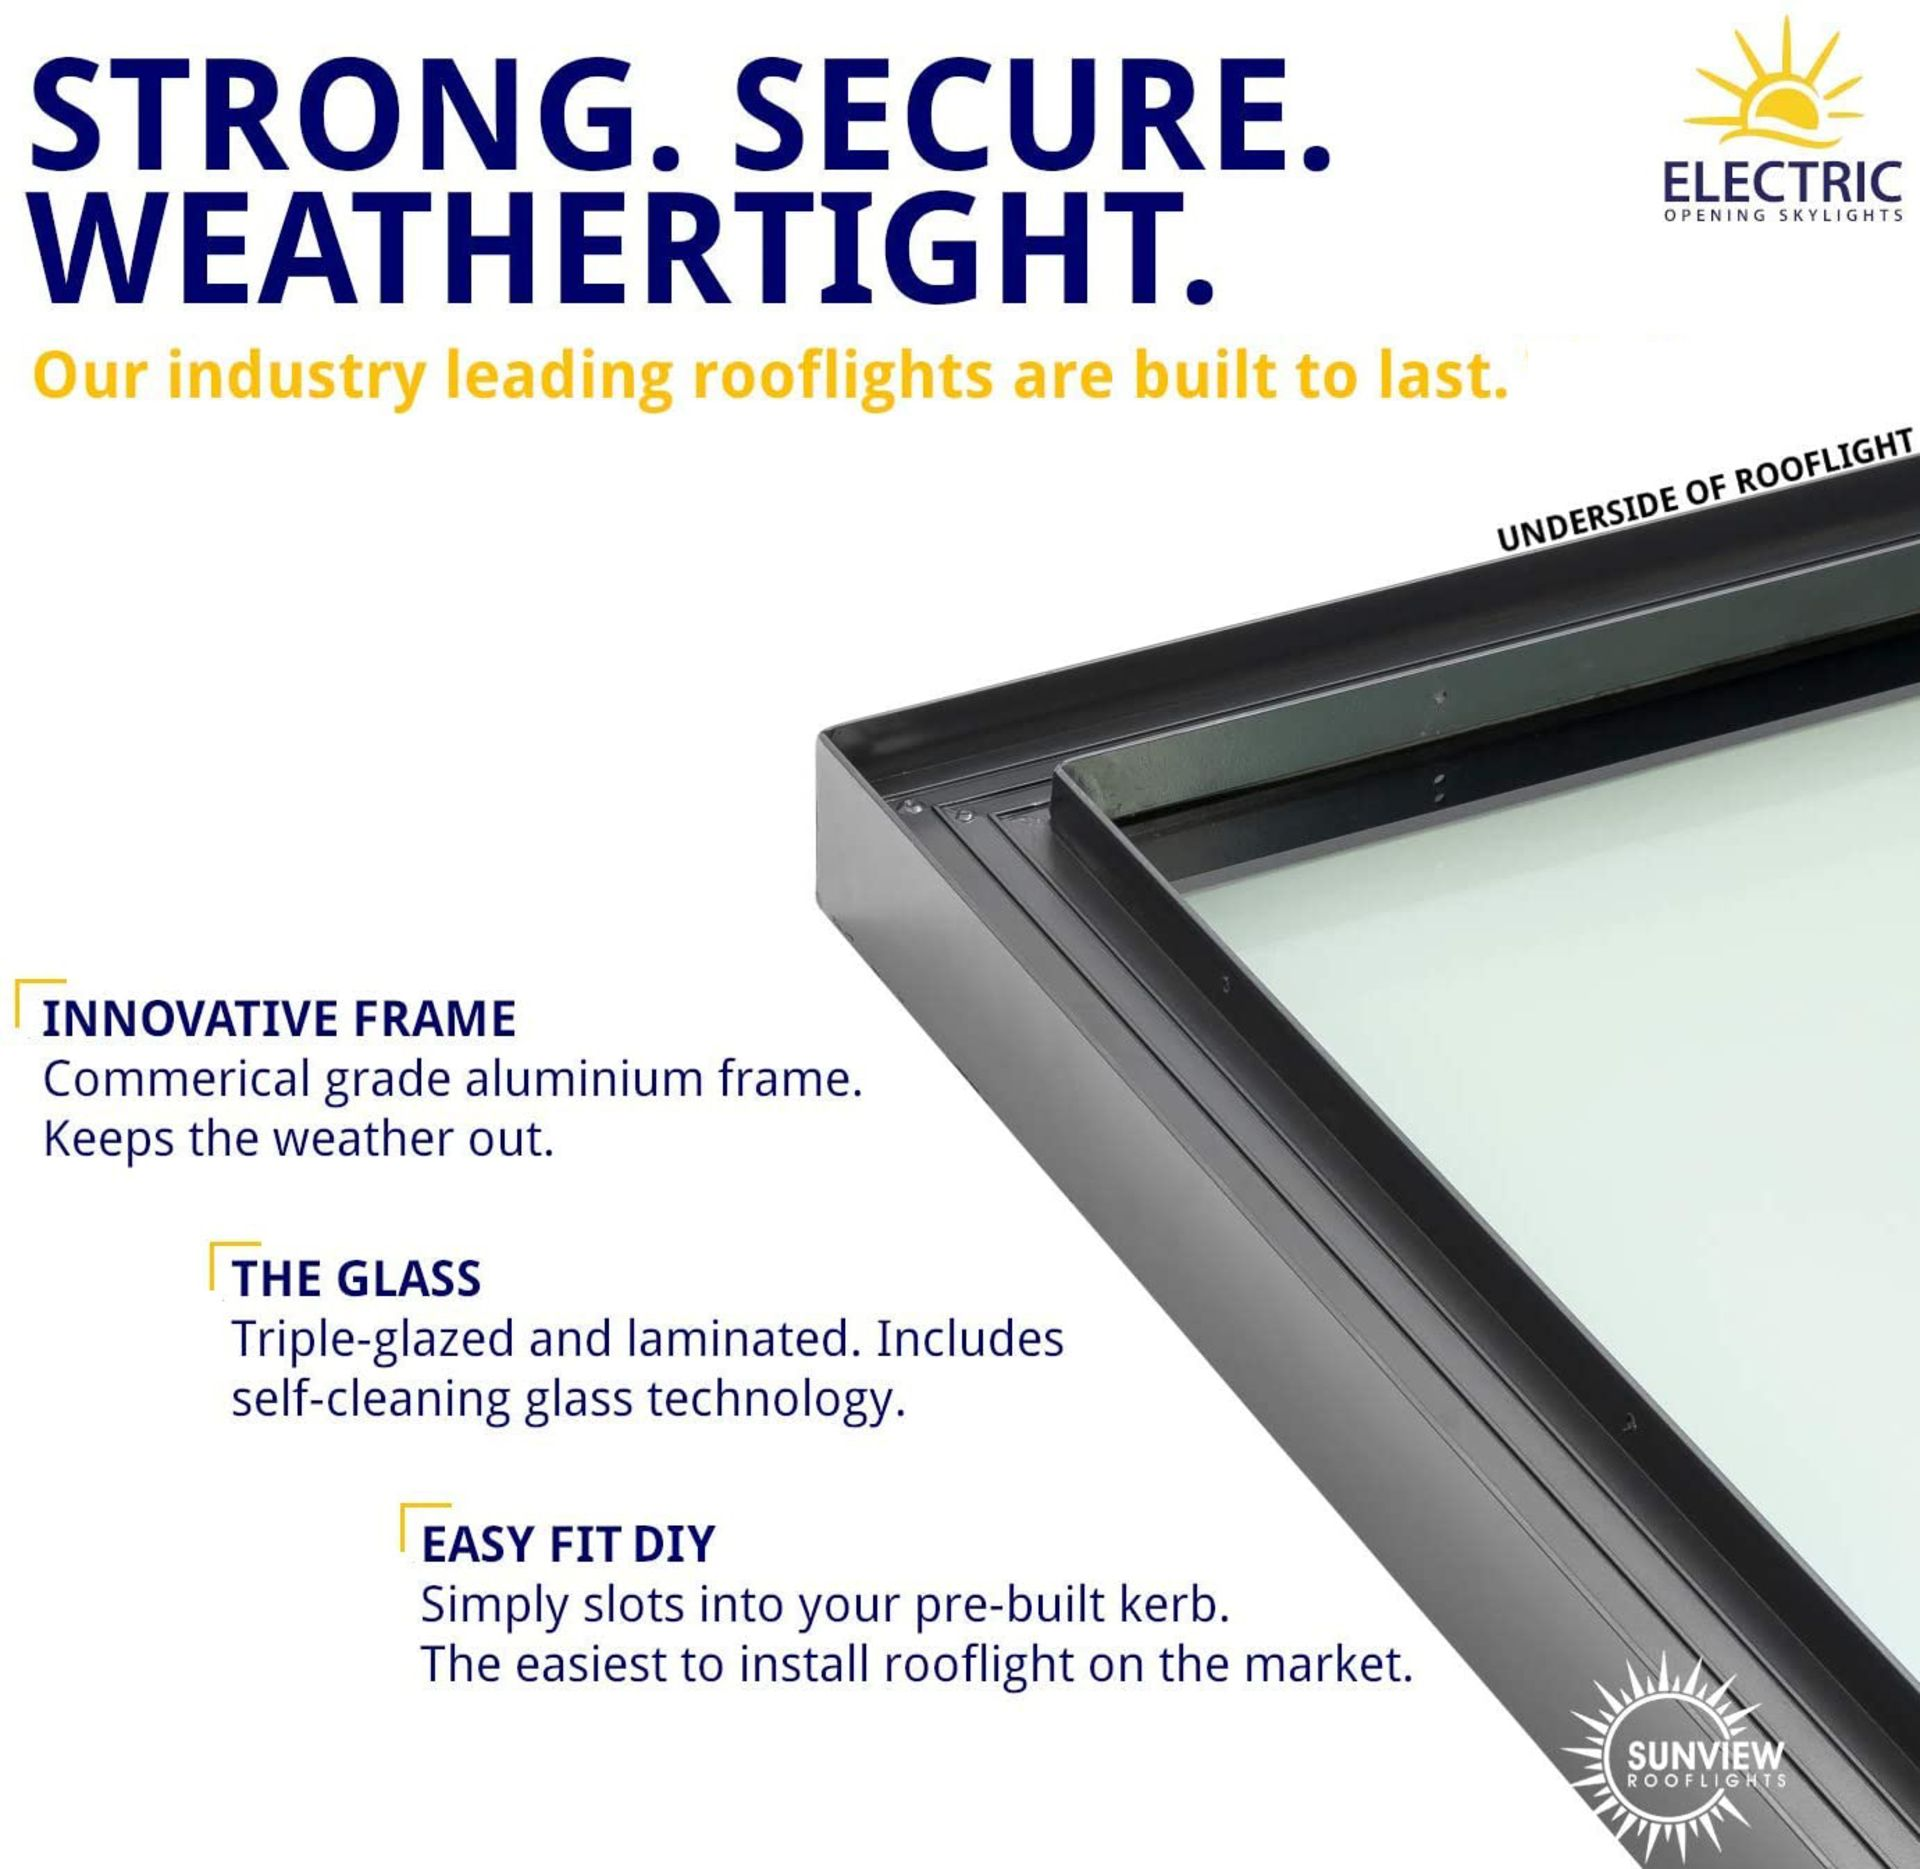 Panoroof (EOS) Fixed Aluminium Triple-Glazed Laminated Skylight with Self-Cleaning Glass - - Image 2 of 6